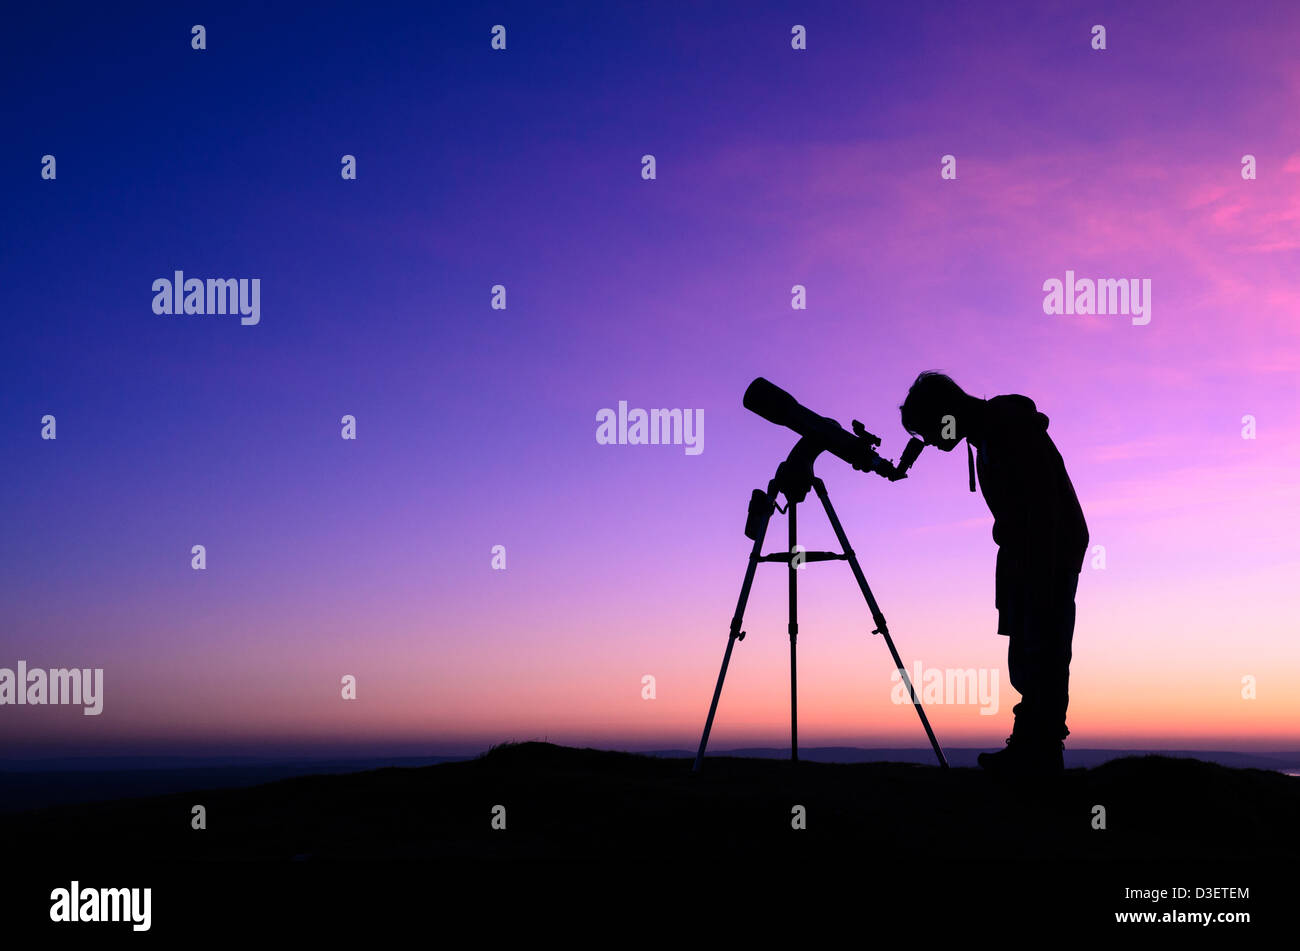 The silhouette of a teenage boy stargazing with a telescope at dusk - Stock Image